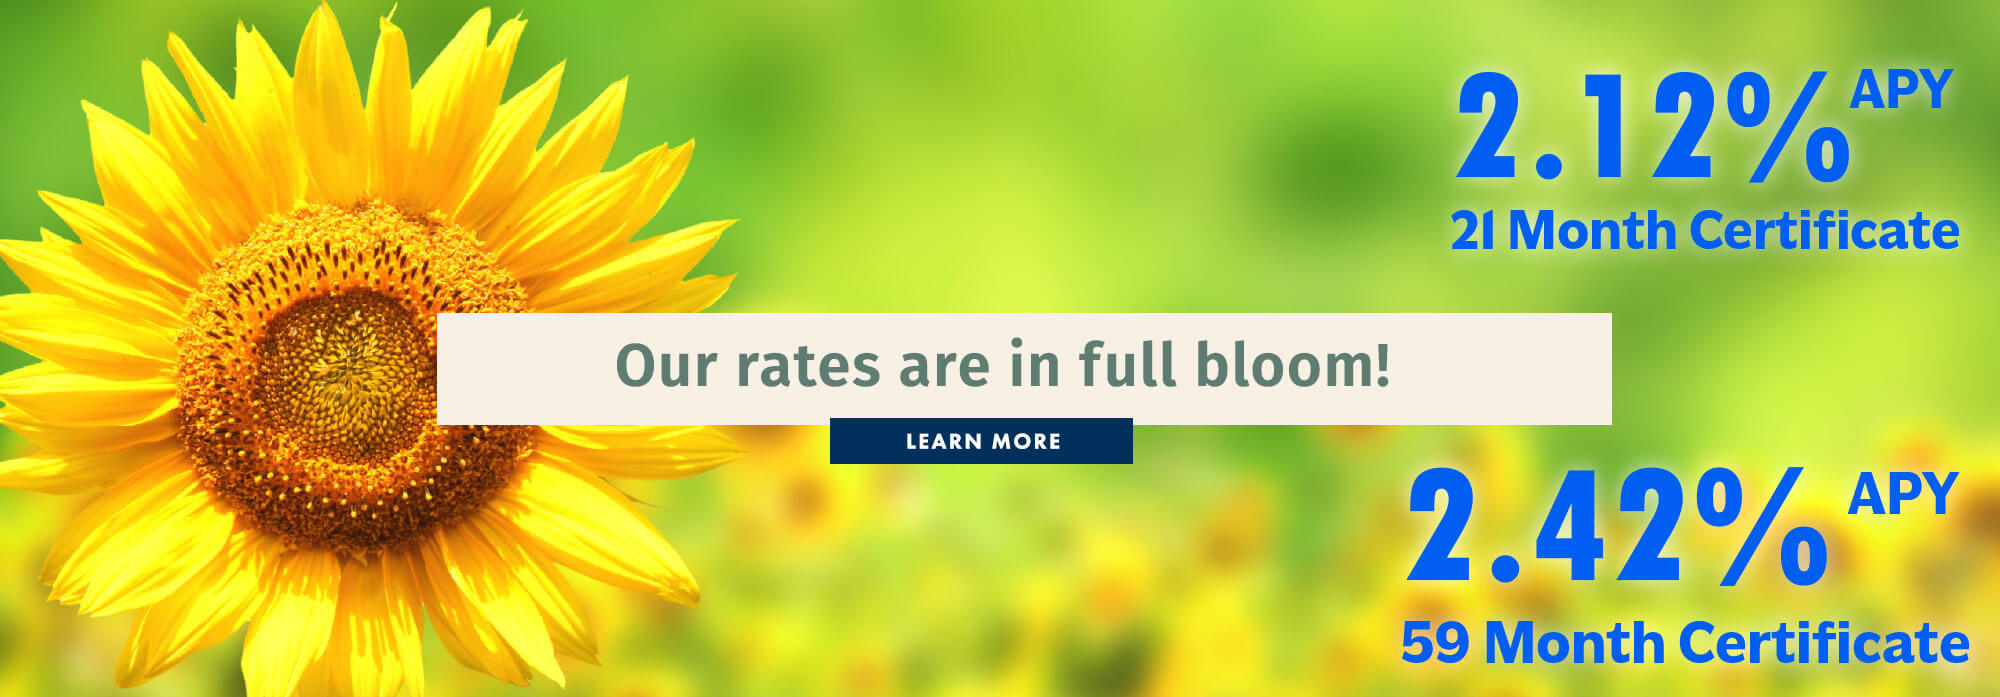 Our Rates Are In Full Bloom!